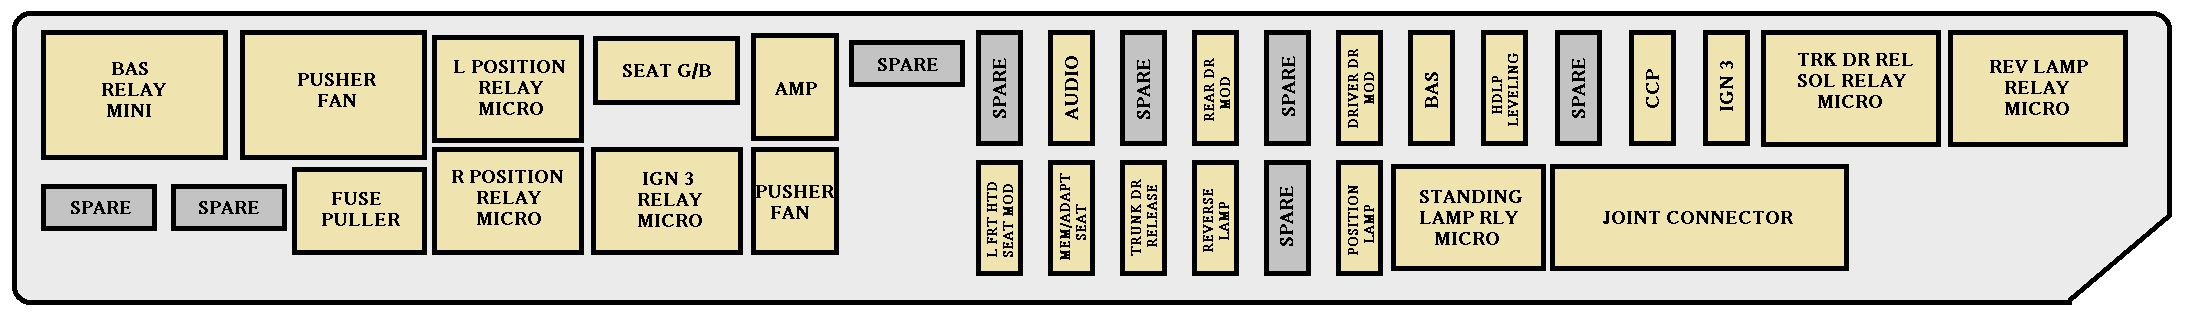 2004 cadillac cts v battery fuse box diagram wire center u2022 rh mrguitar co 2004 cadillac deville fuse box location 2004 cadillac srx fuse box location